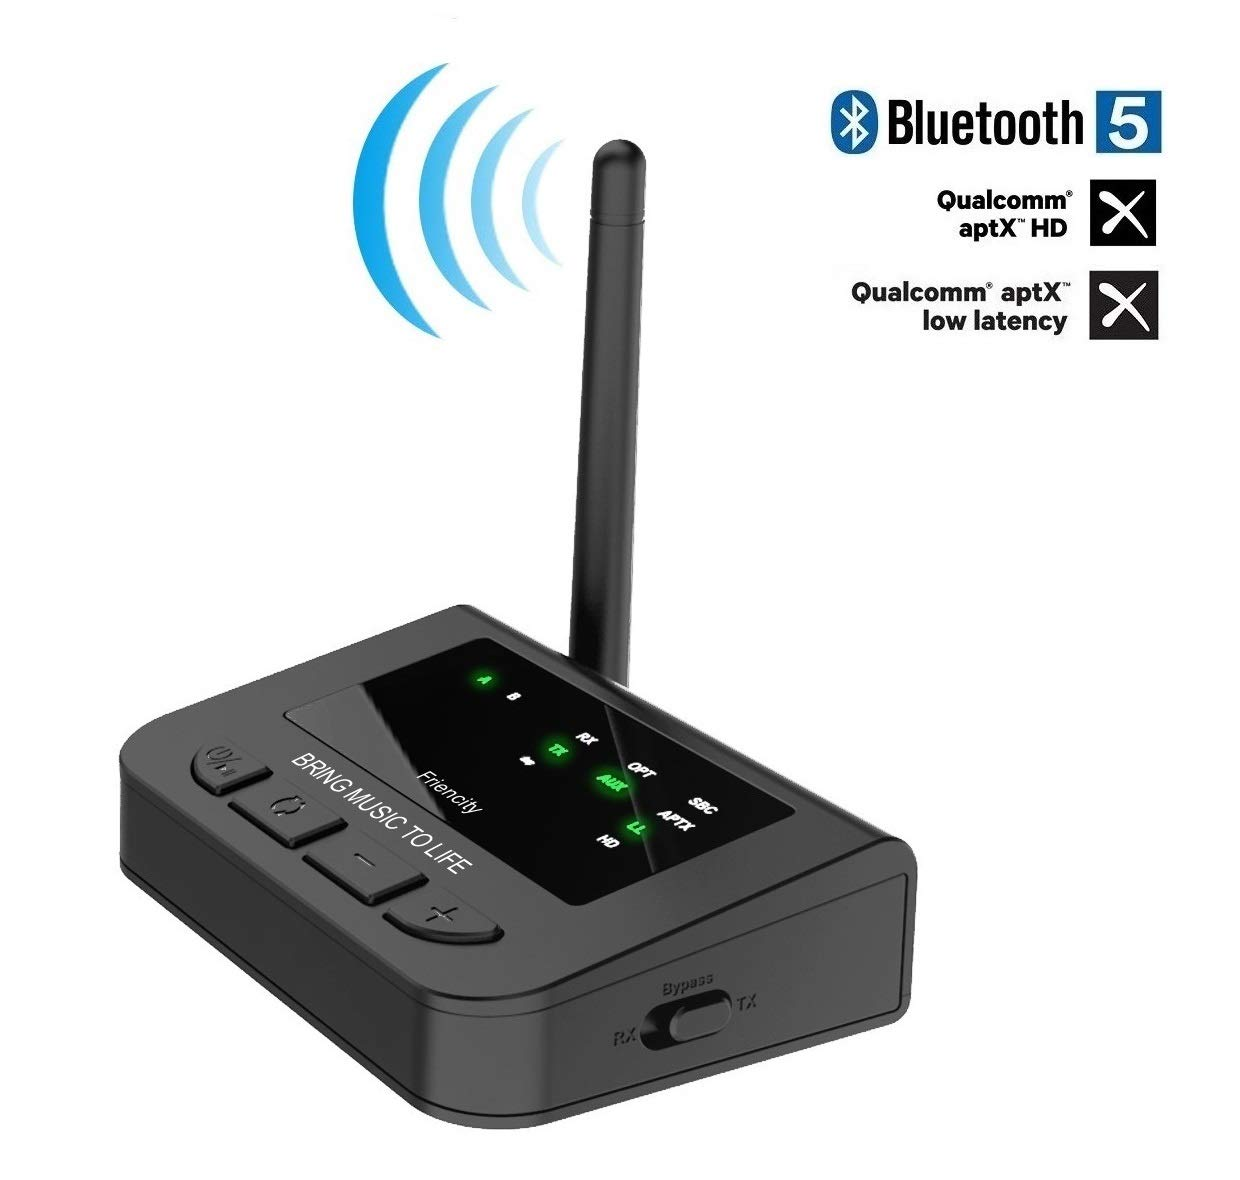 Friencity Long Range Bluetooth 5.0 Transmitter Receiver for TV, Wireless Audio Pass-Thru Adapter with AptX HD & Low Latency, Dual Stream, Digital Aux Optical, Always Play and Re-Connection by Friencity